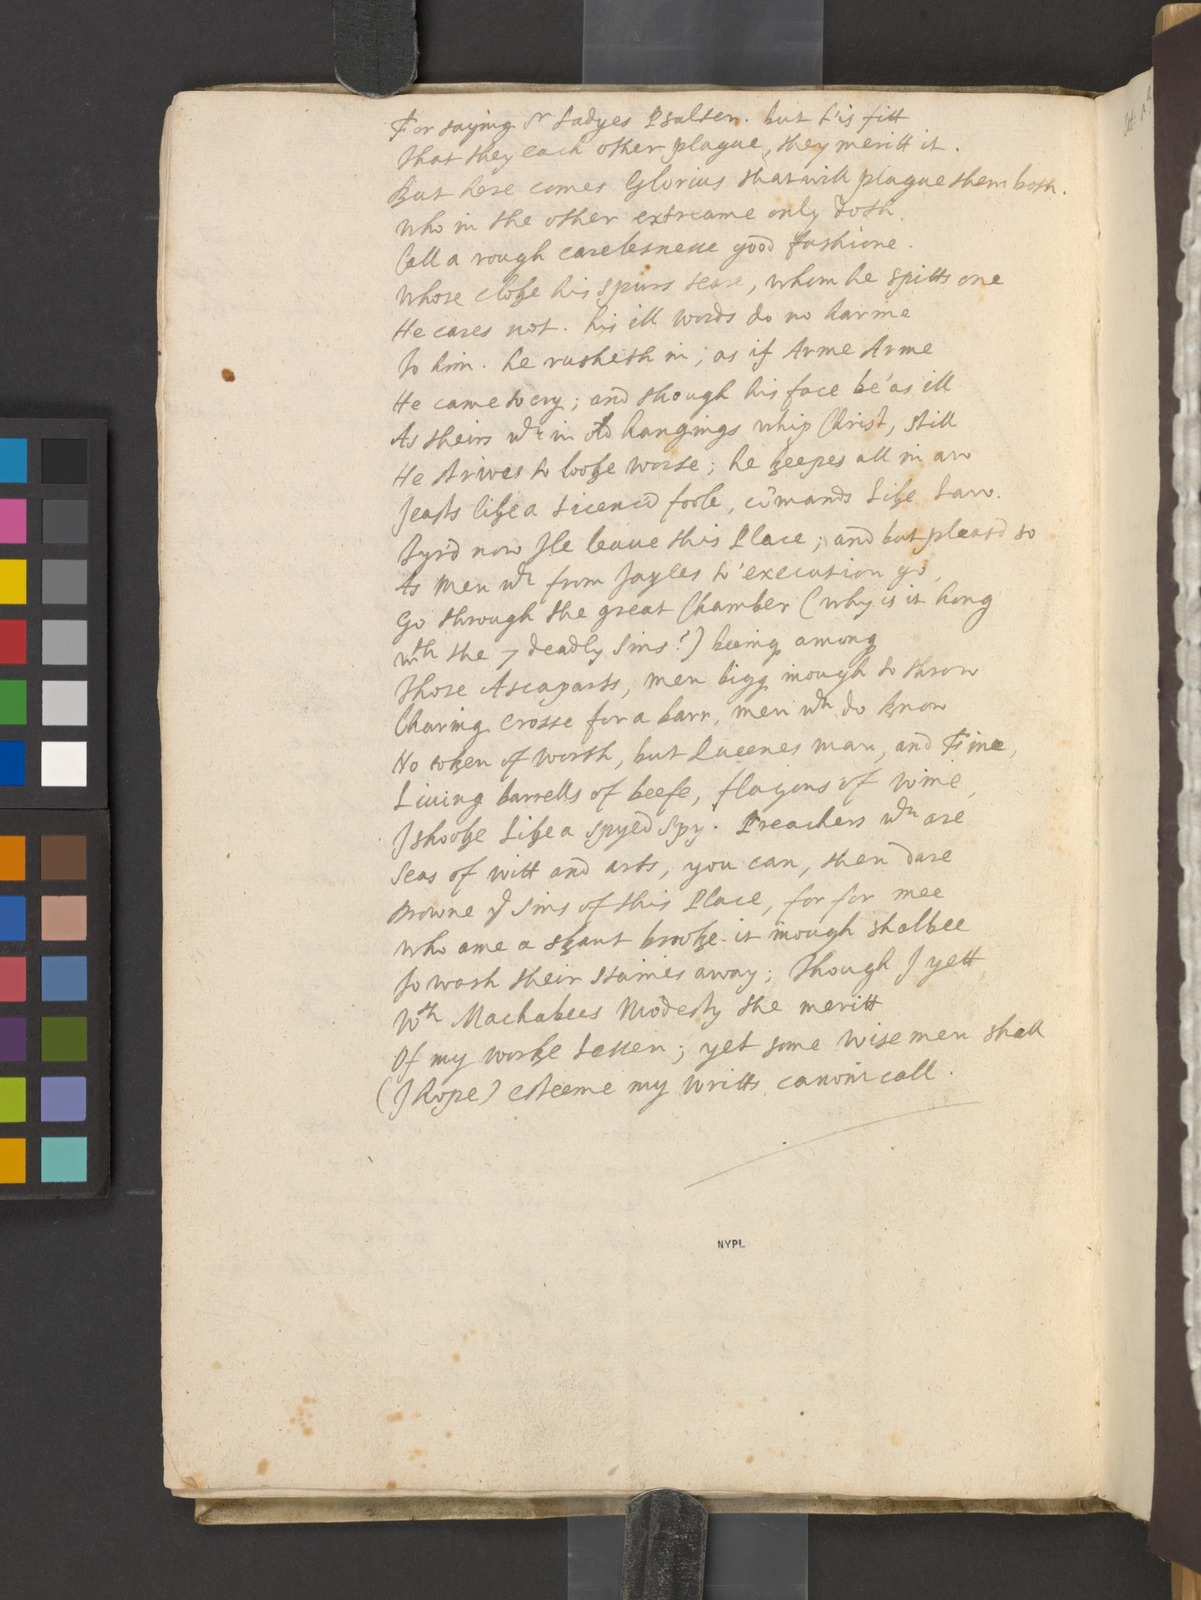 [The Westmoreland manuscript of the poems]